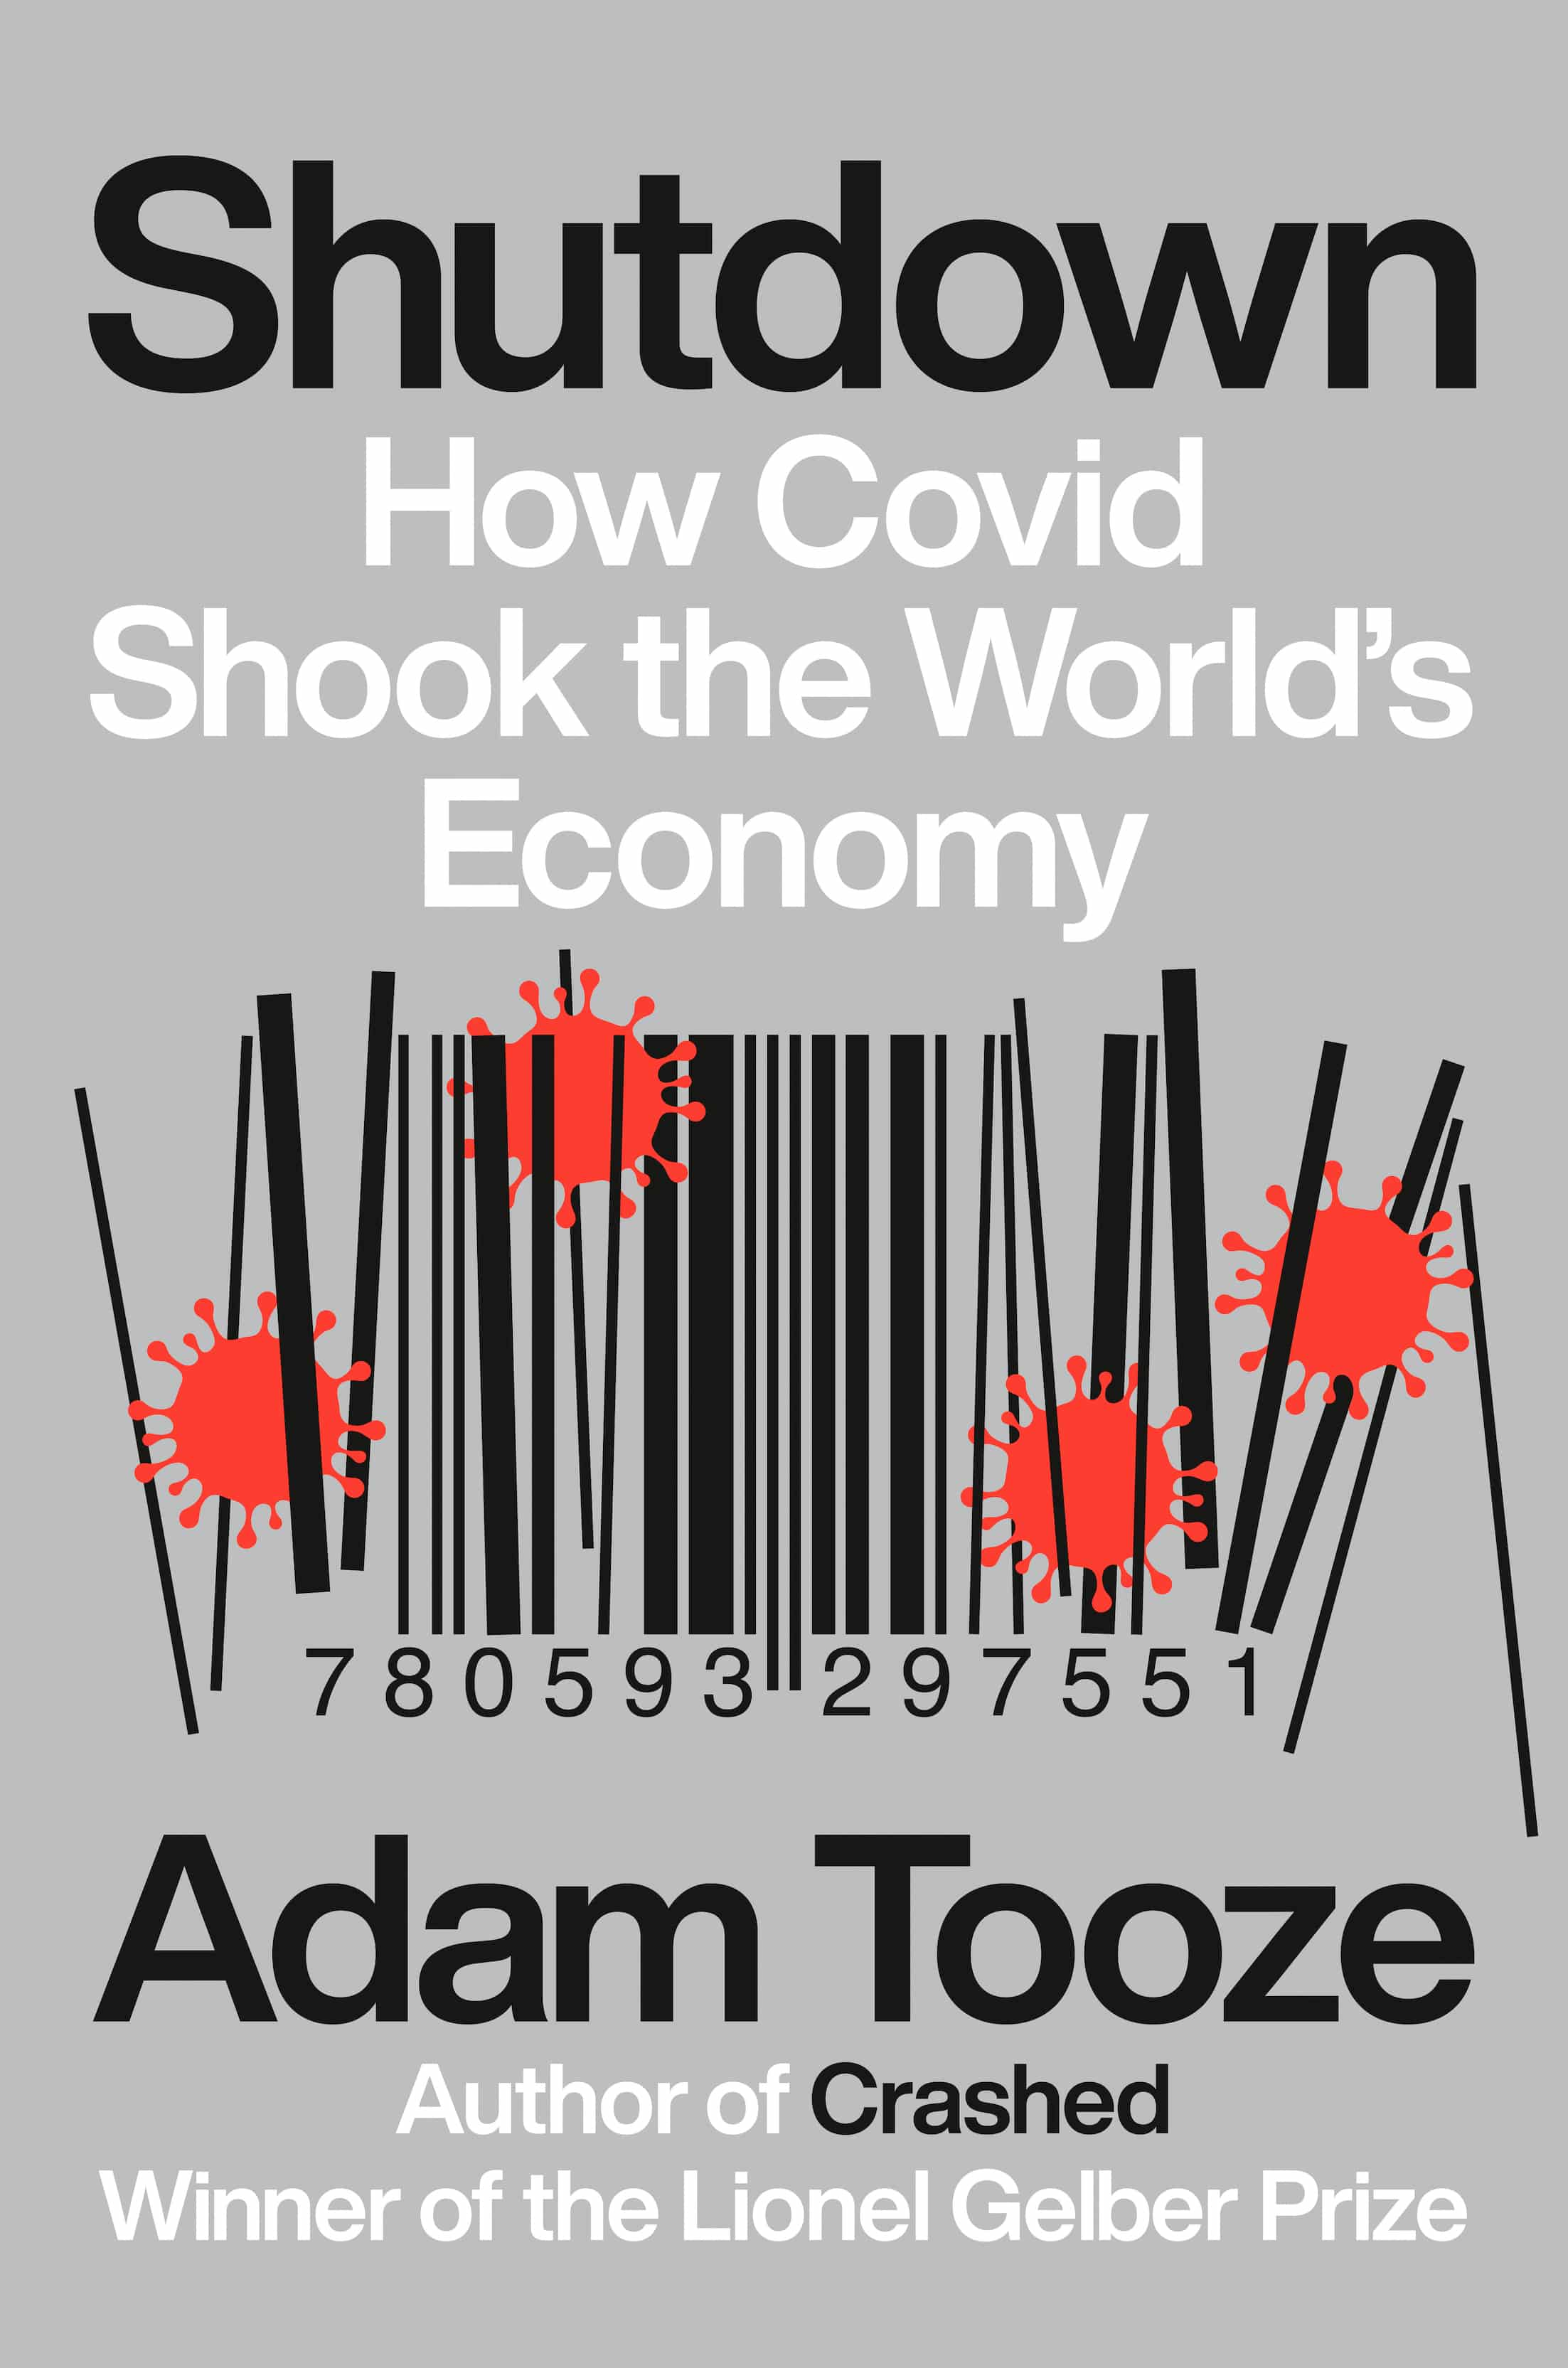 Grey Book Cover - Shutdown: How Covid Shook the World's Economy by Adam Tooze with a bar code disrupted by Covid 19 microbes